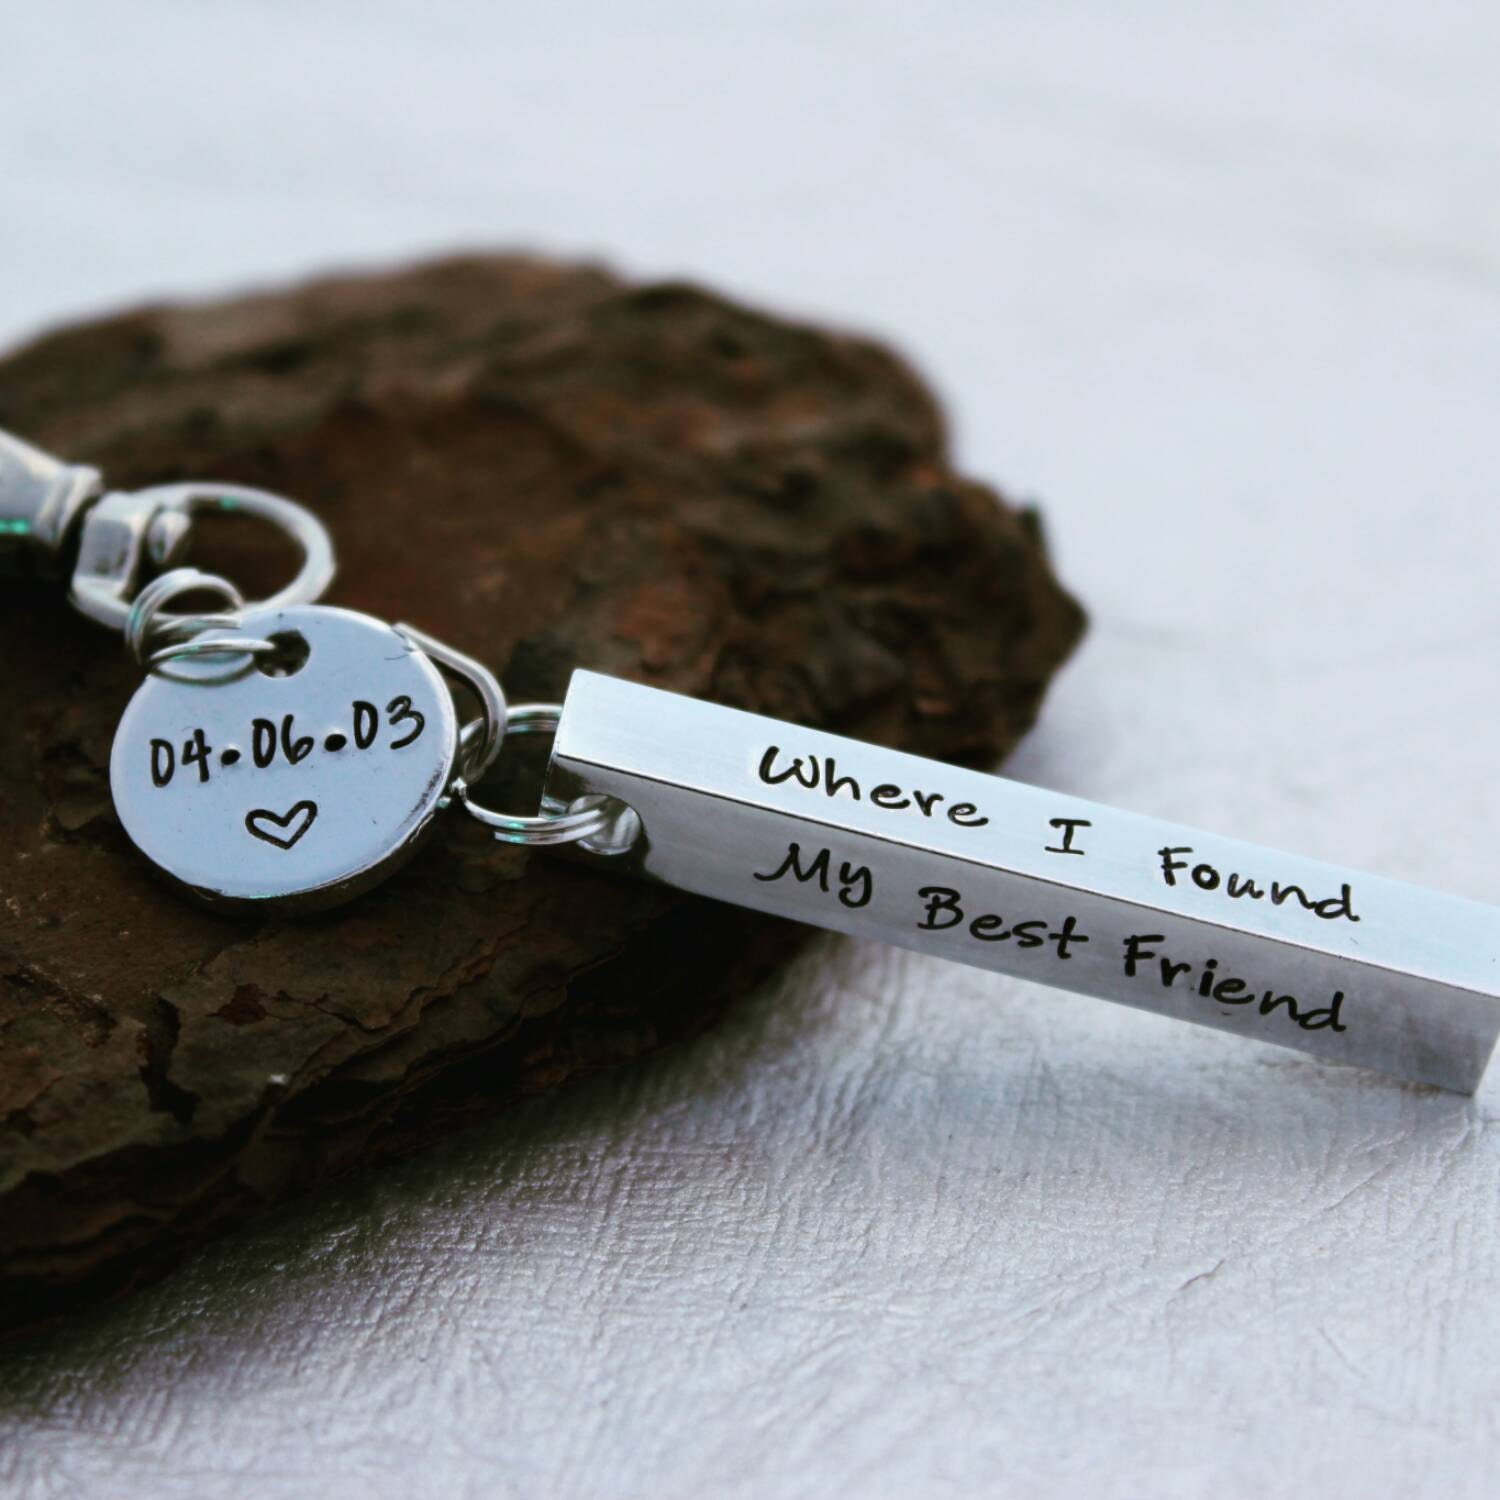 Coordinate Keychain - Where I Found my Best Friend - Keychain Bar - Anniversary Gift - Men's Keychain - Gifts for Him - Best Friends Gift